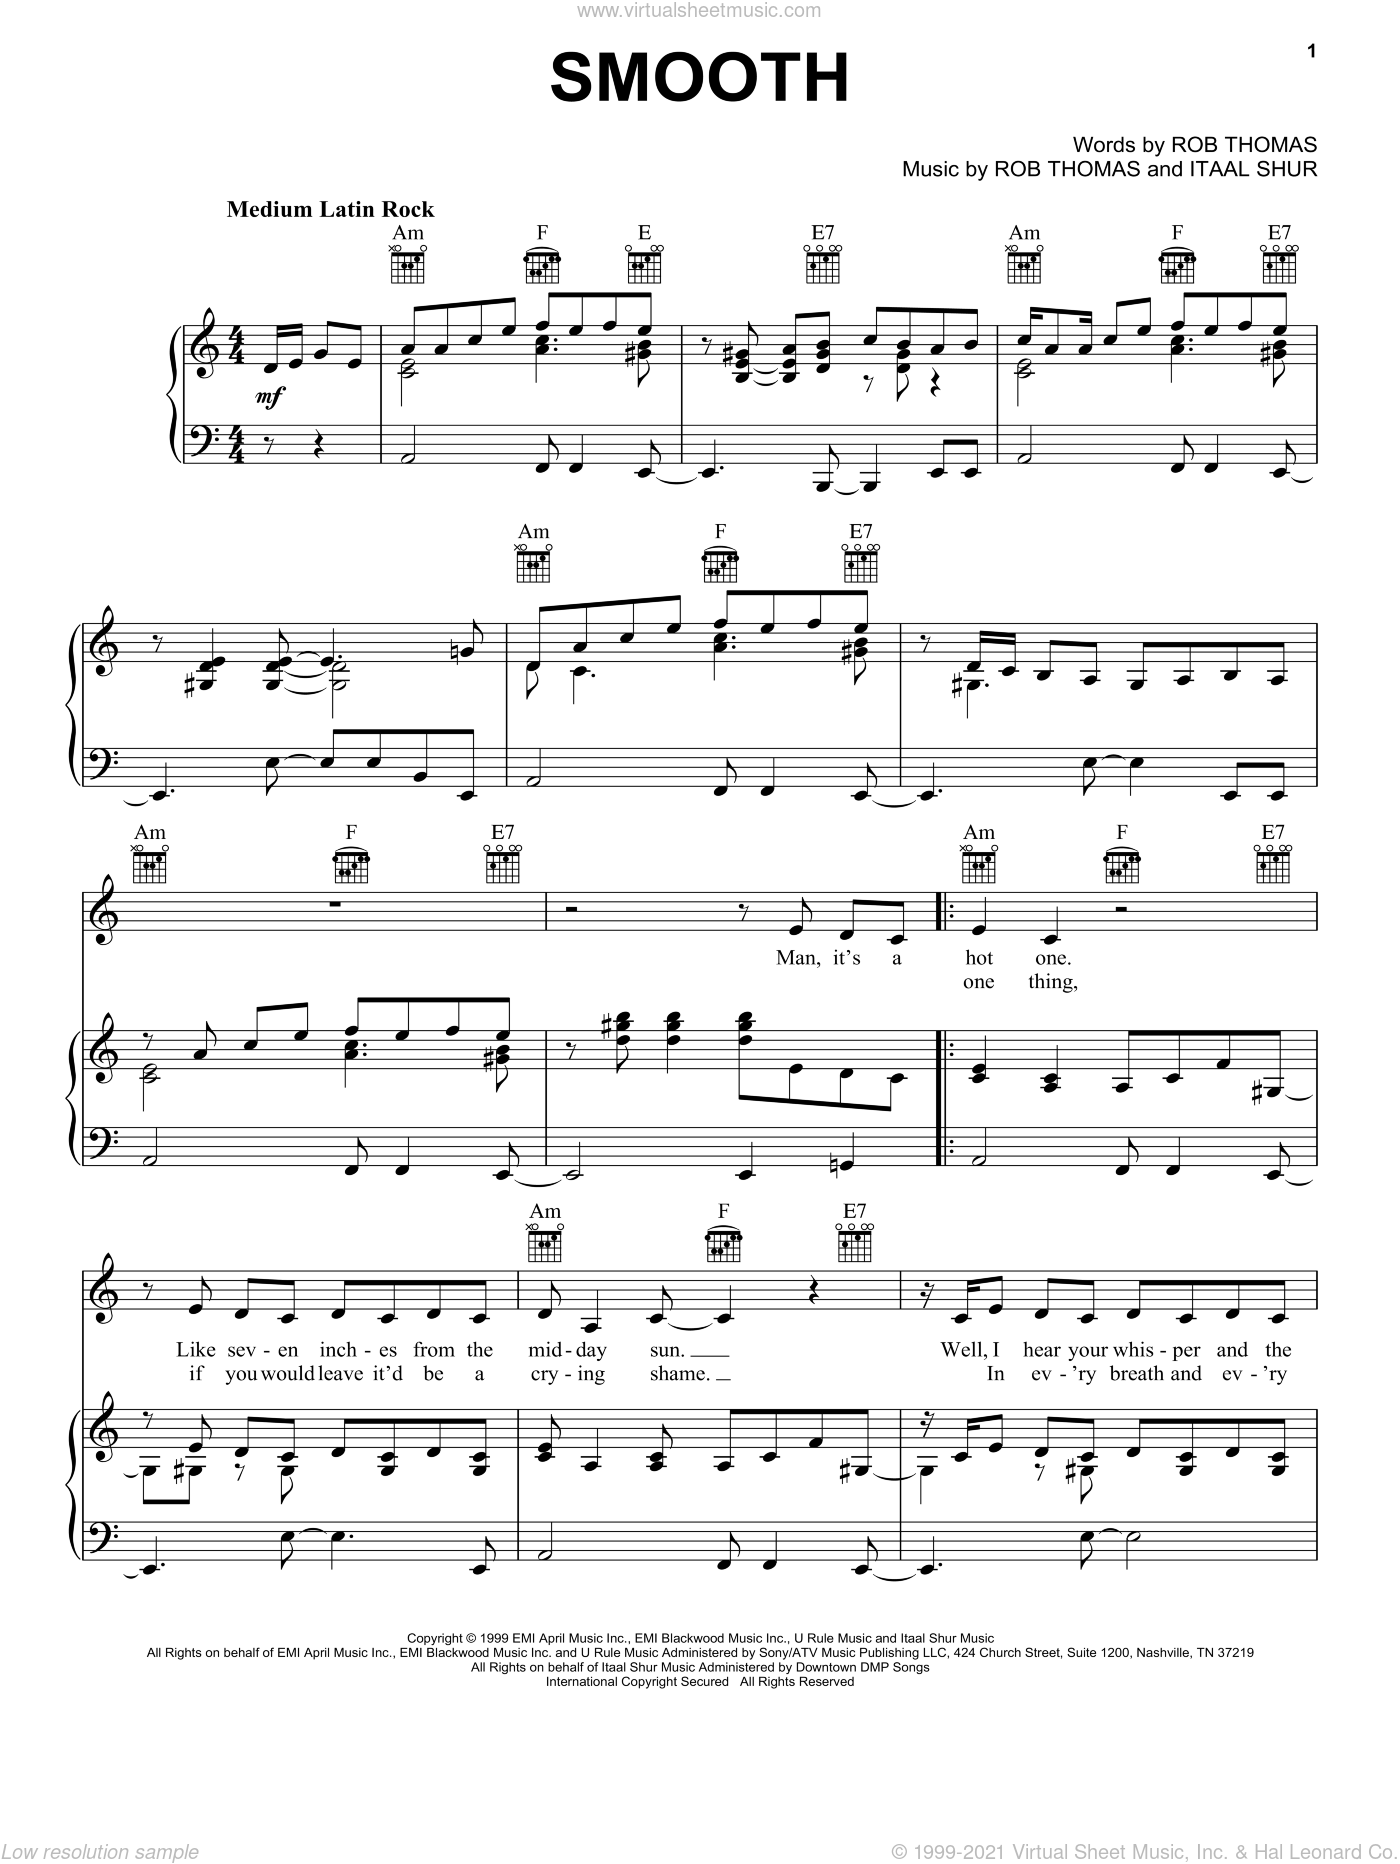 Smooth sheet music for voice, piano or guitar by Itaal Shur